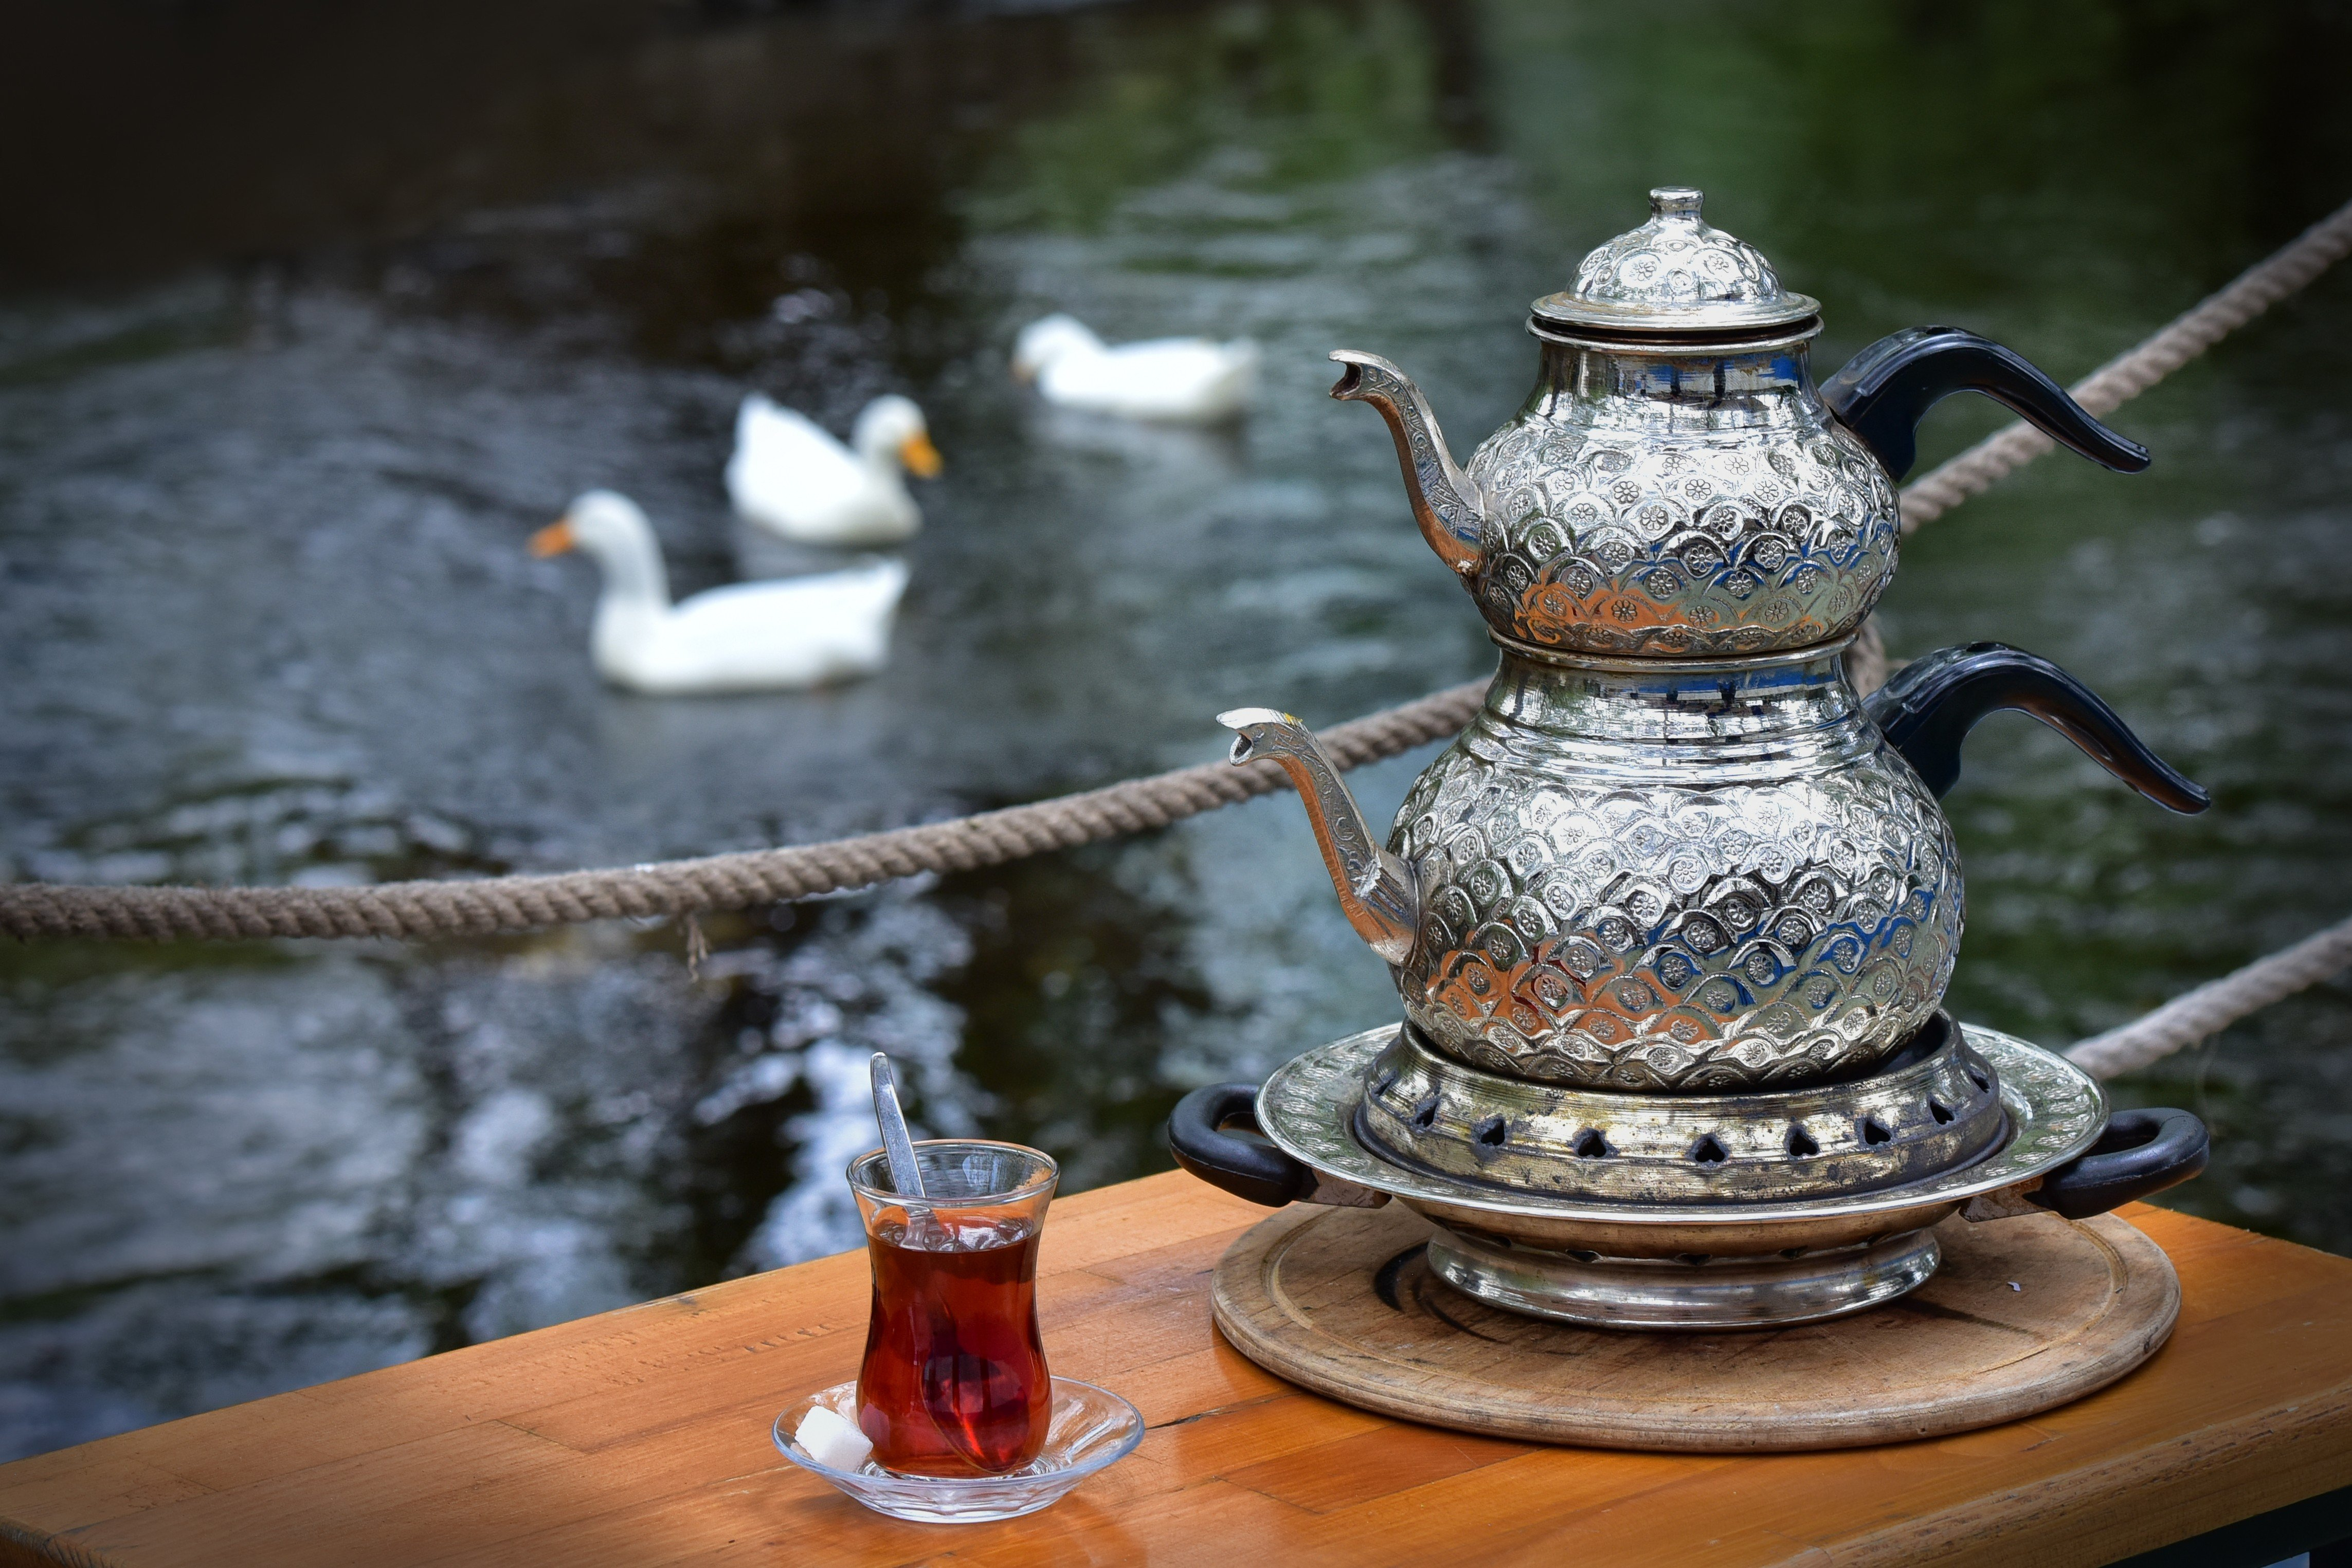 Tea, the most commonly consumed hot drink in Turkey, is an important part of social gatherings in Turkish culture. (İHA Photo)